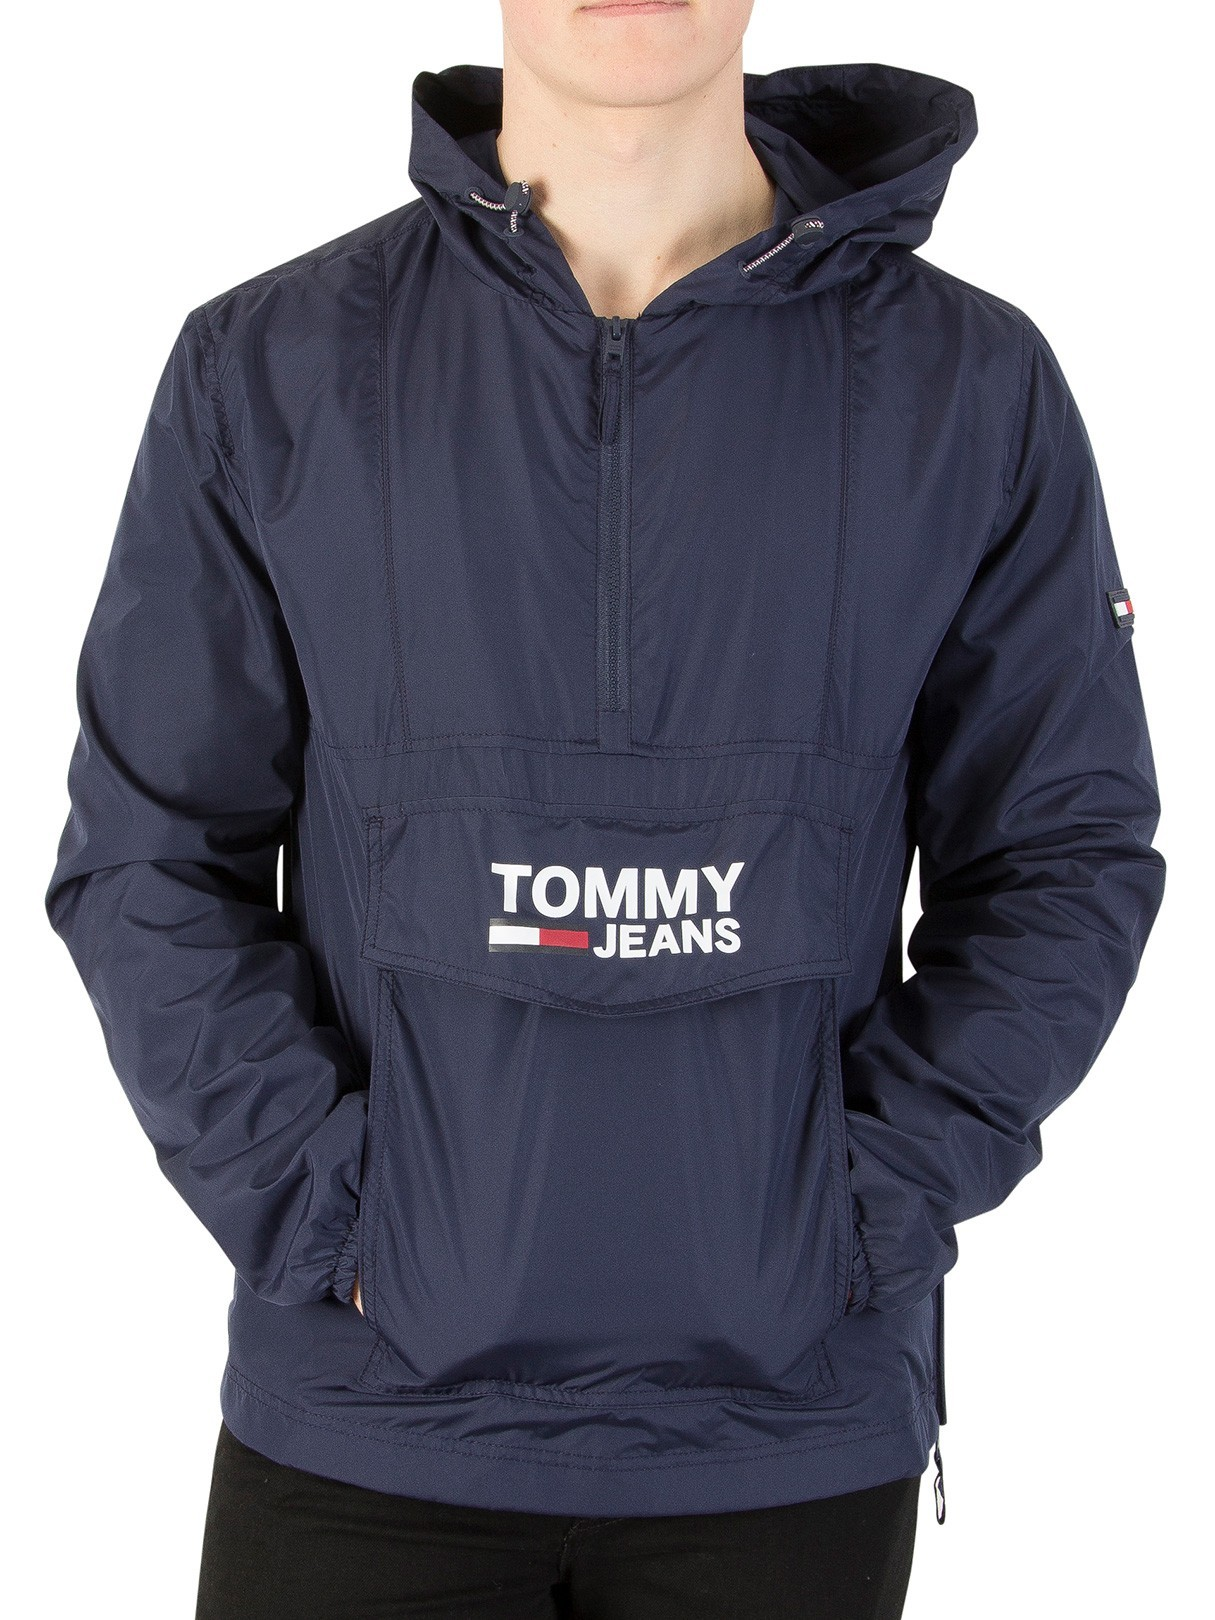 Leather Jackets & Coats|Men's Tommy Jeans Black Iris Pullover Anorak Jacket